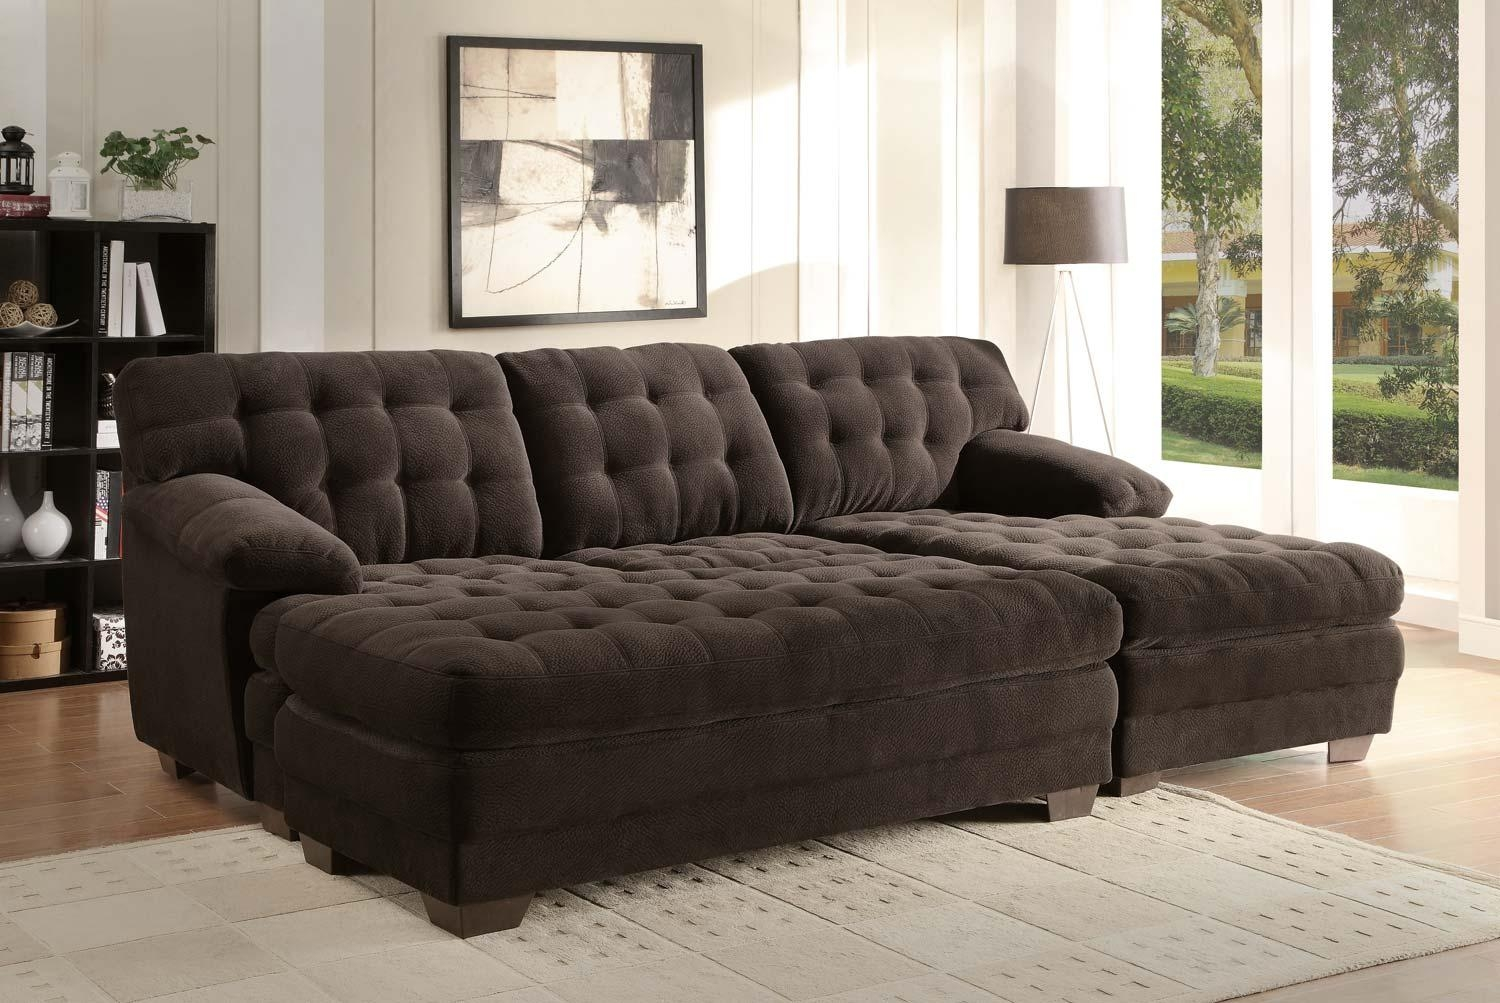 Sectional Sofa Couch Reversible Chaise Micro Suede Chocolate In Sectional Sofa With Large Ottoman (View 8 of 20)